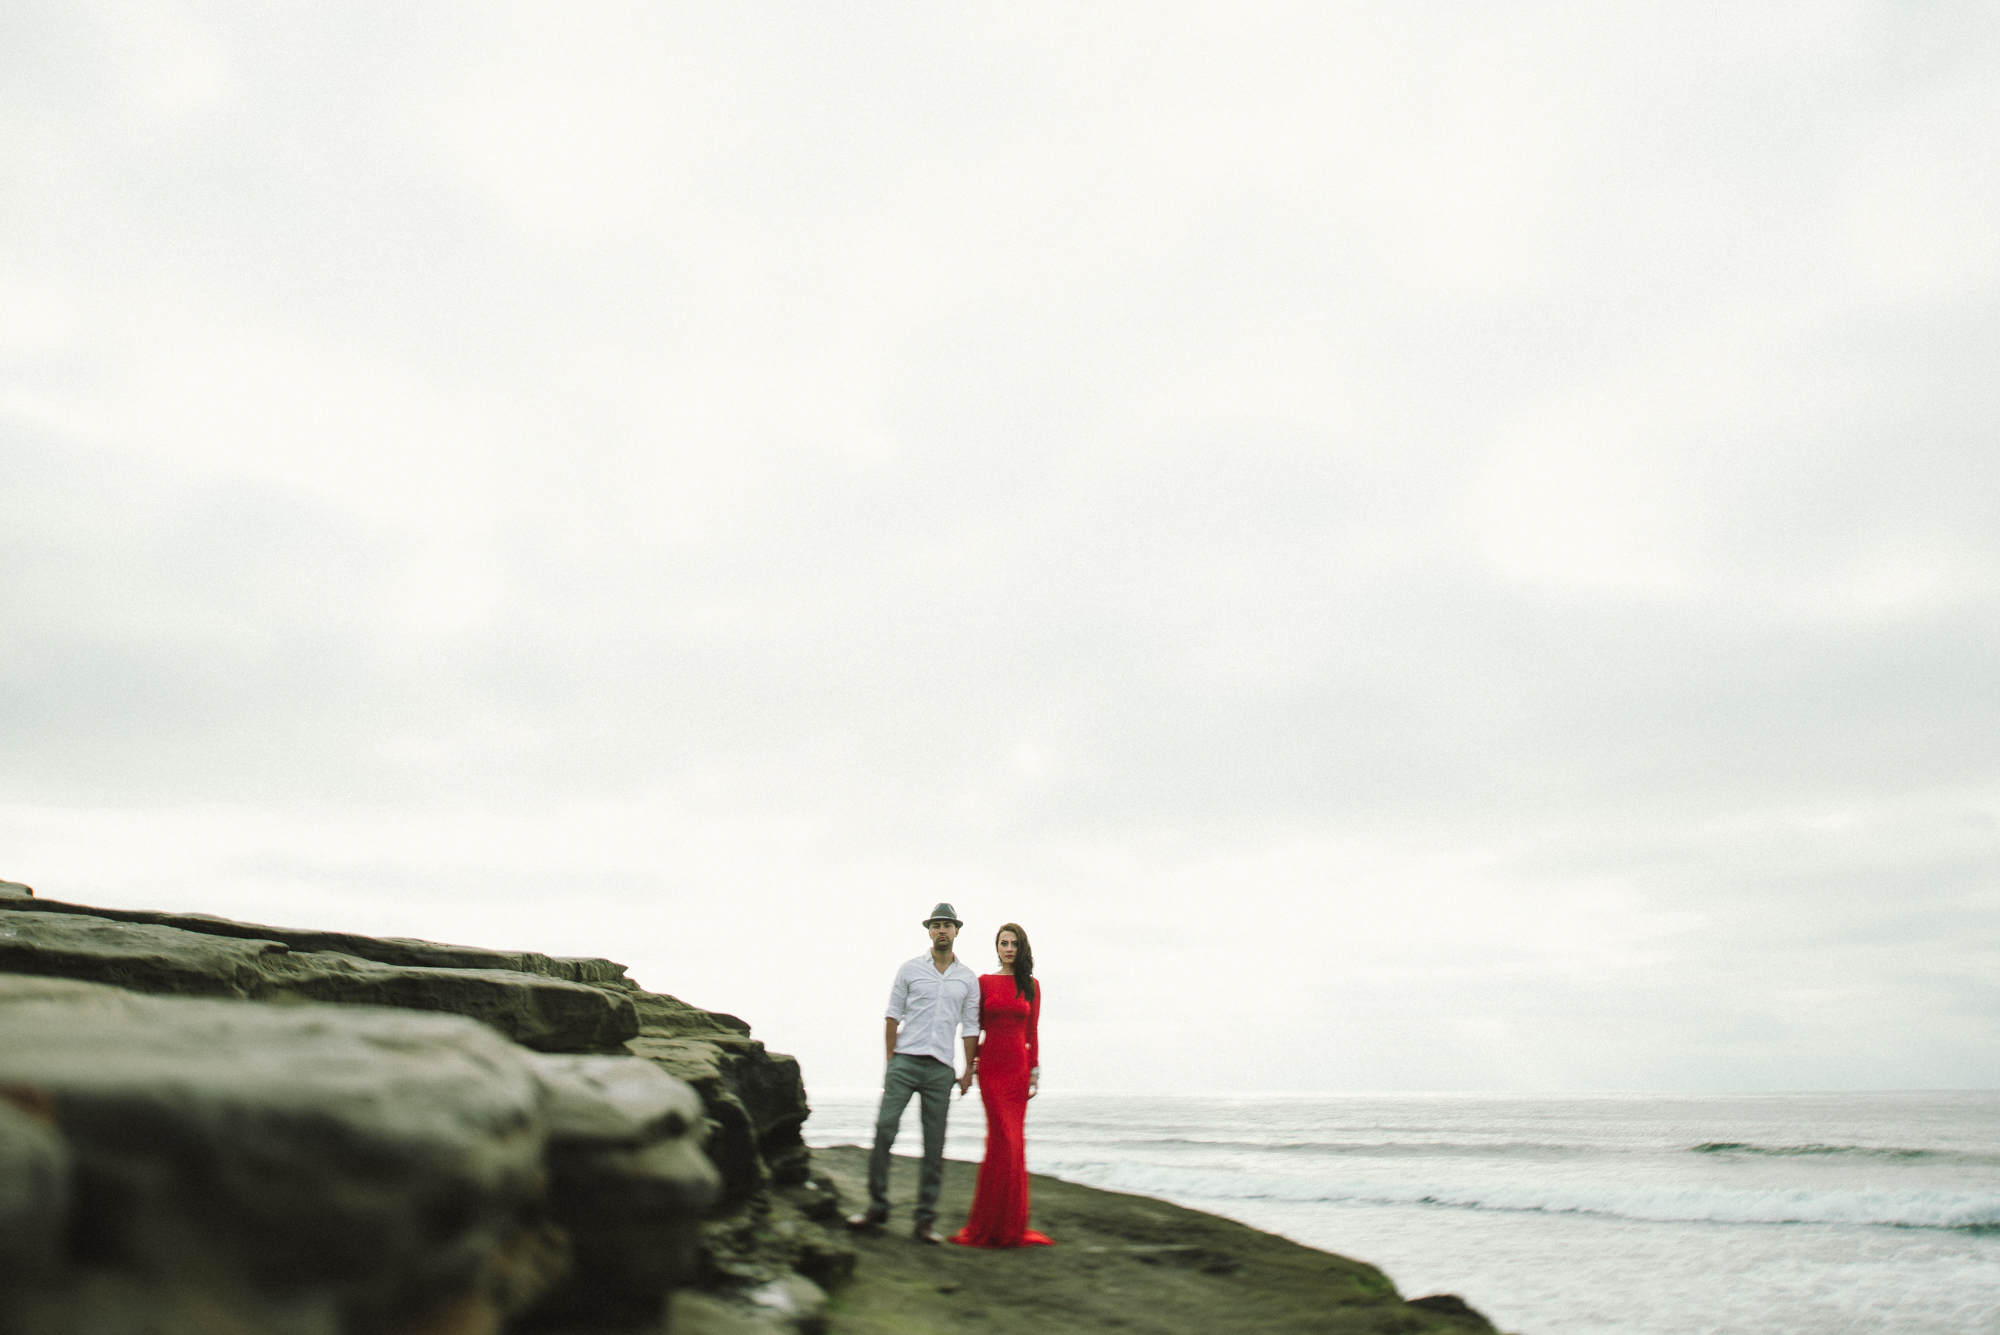 Isaiah & Taylor Photography - Los Angeles - Destination Wedding Photographers - San Diego Sunset Cliffs Beach Adventure Engagement-7.jpg